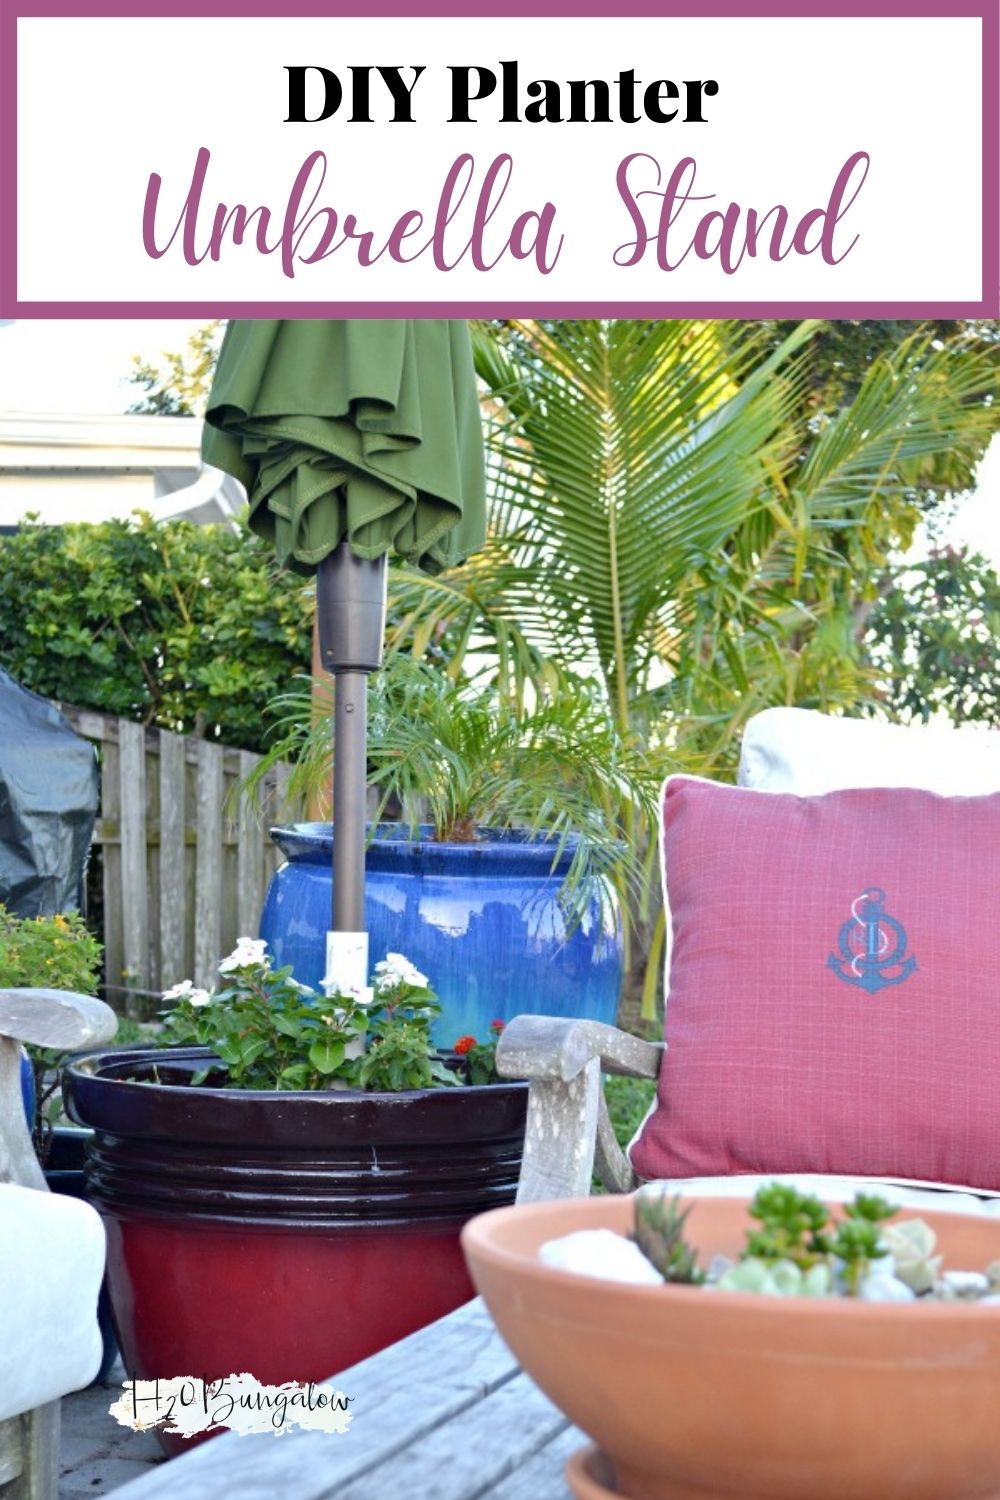 Umbrella plant stand on a patio with text overlay